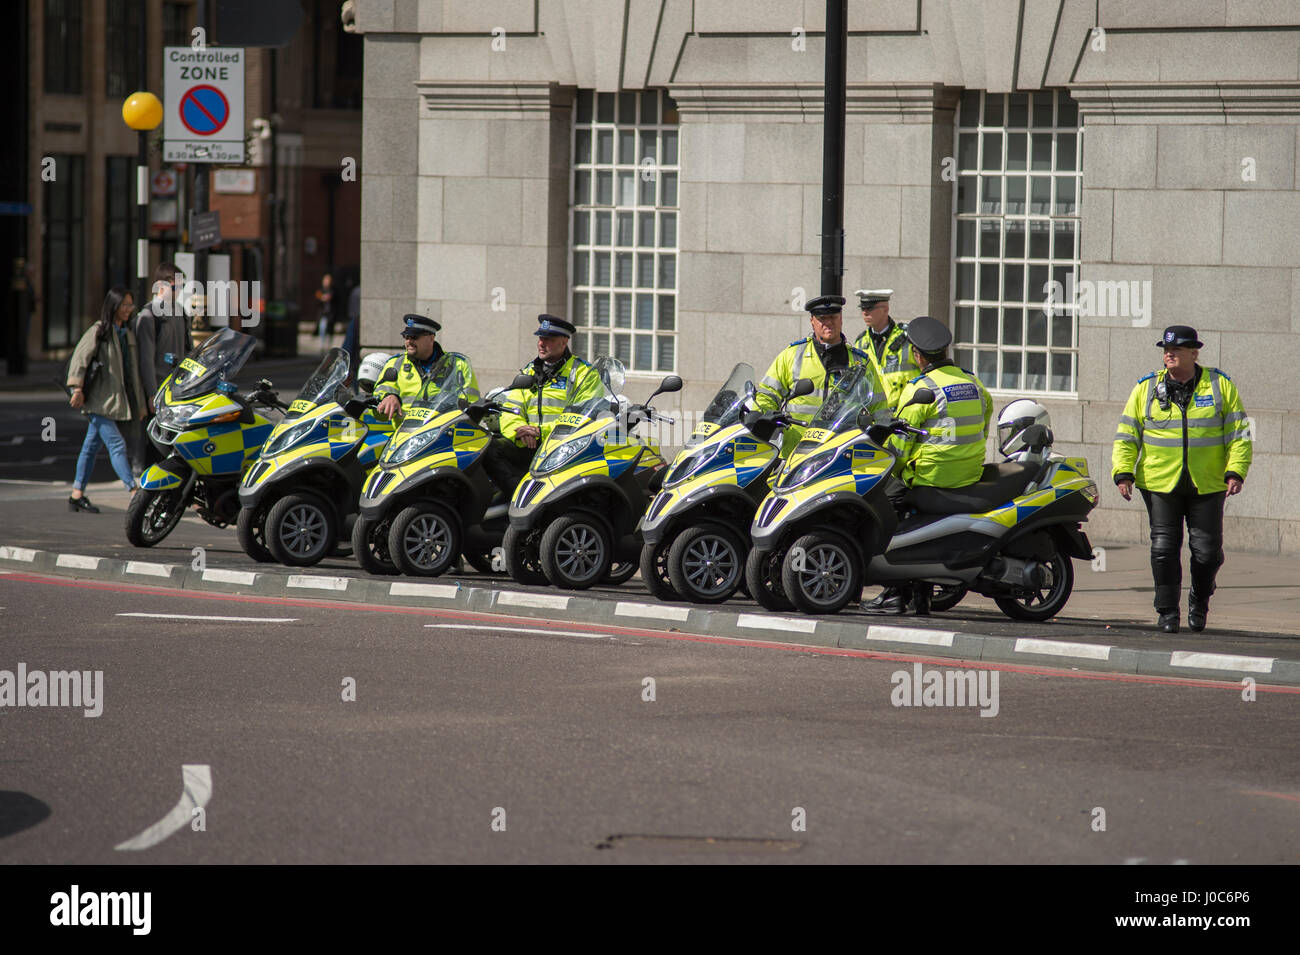 Police community support officers parked by roadside with three wheel scooters in Westminster at Millbank, London. - Stock Image